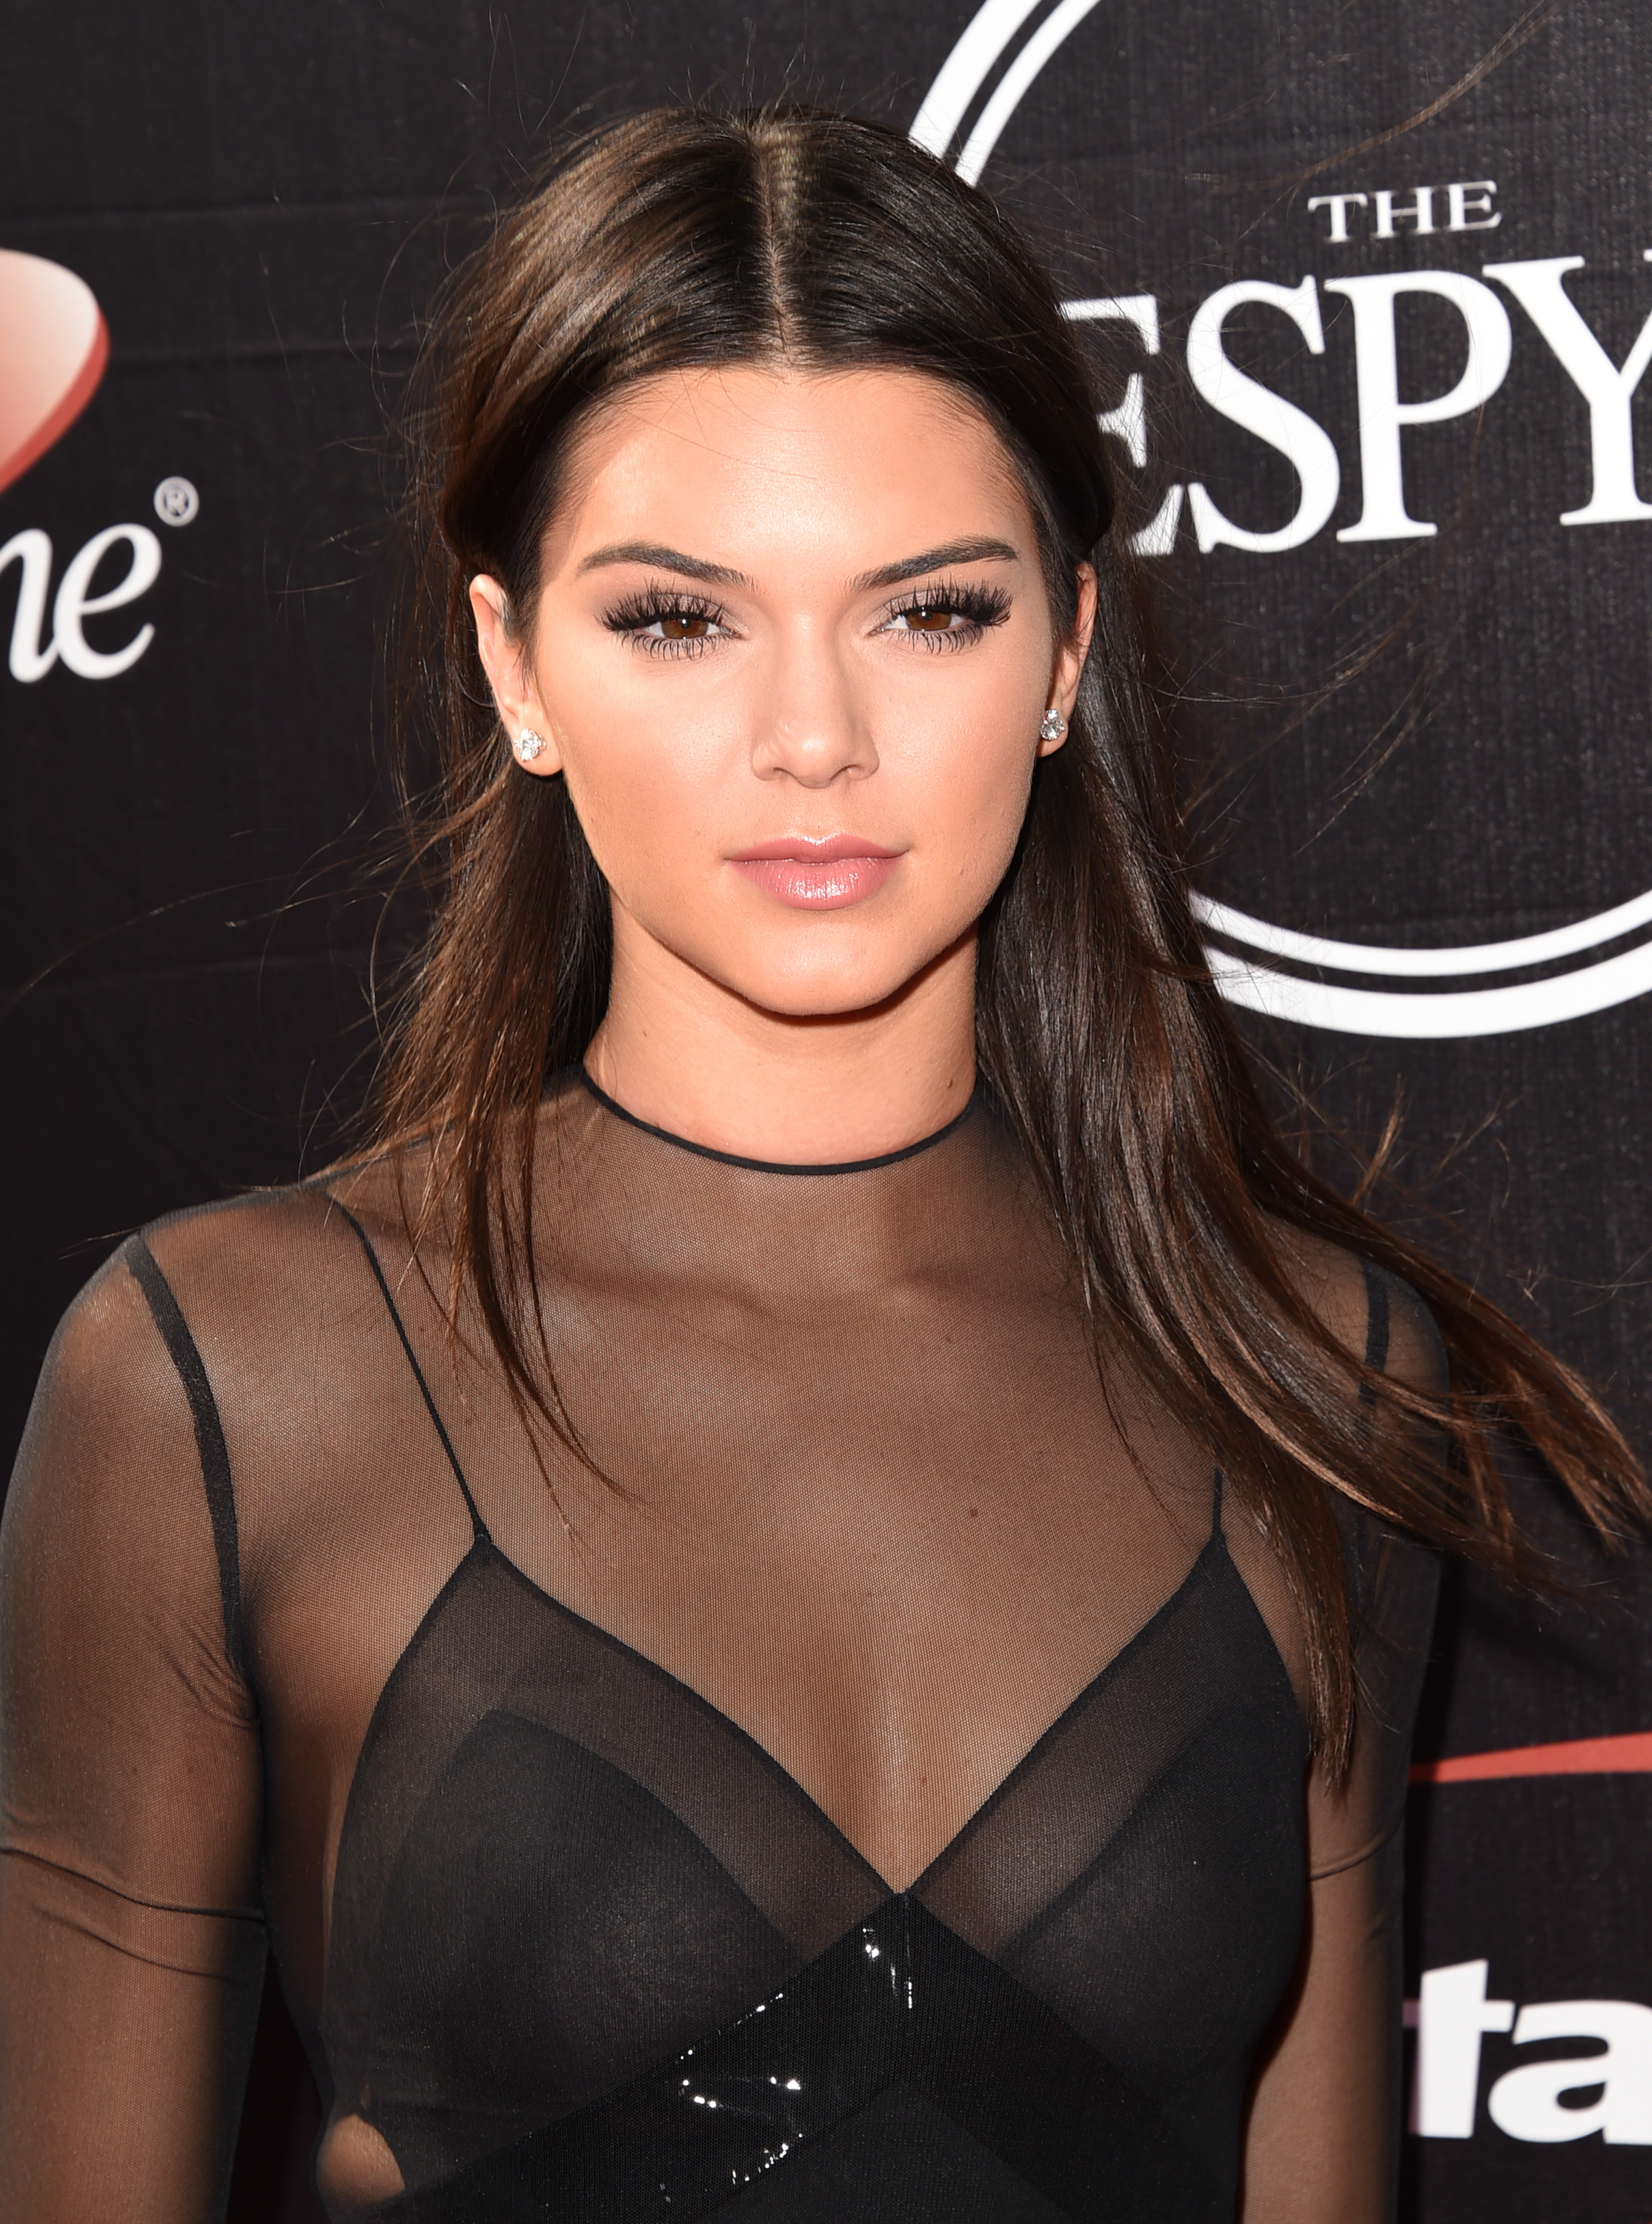 Kendall Jenners Hair Looks Shorter Lighter In Instagram Shot Photo